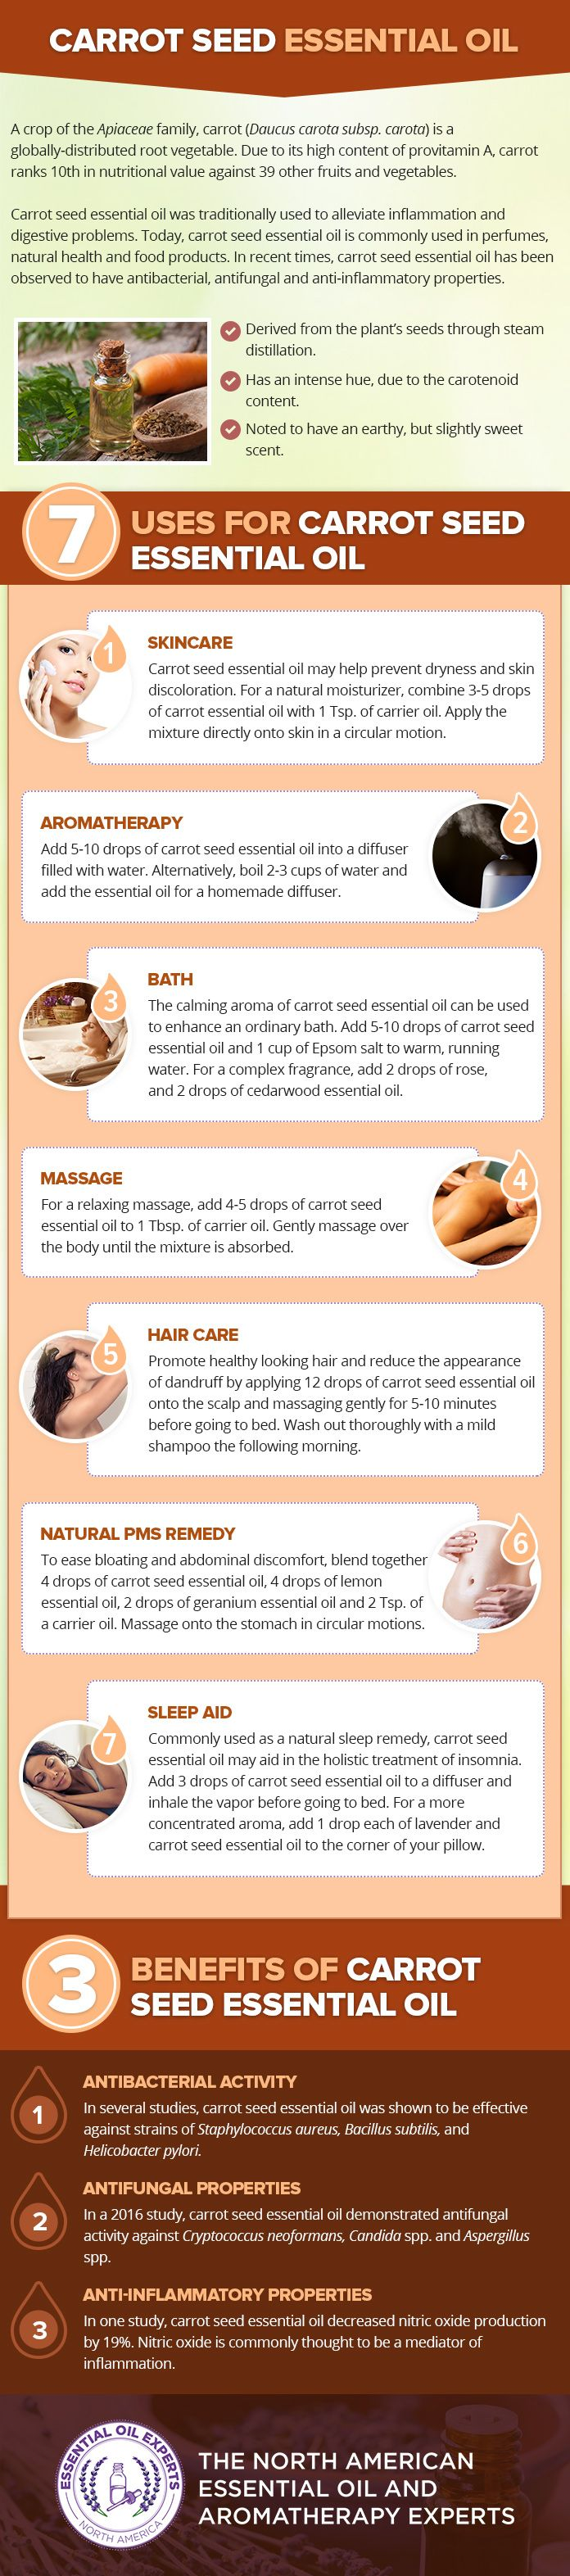 Carrot Seed Essential Oil Uses & Benefits